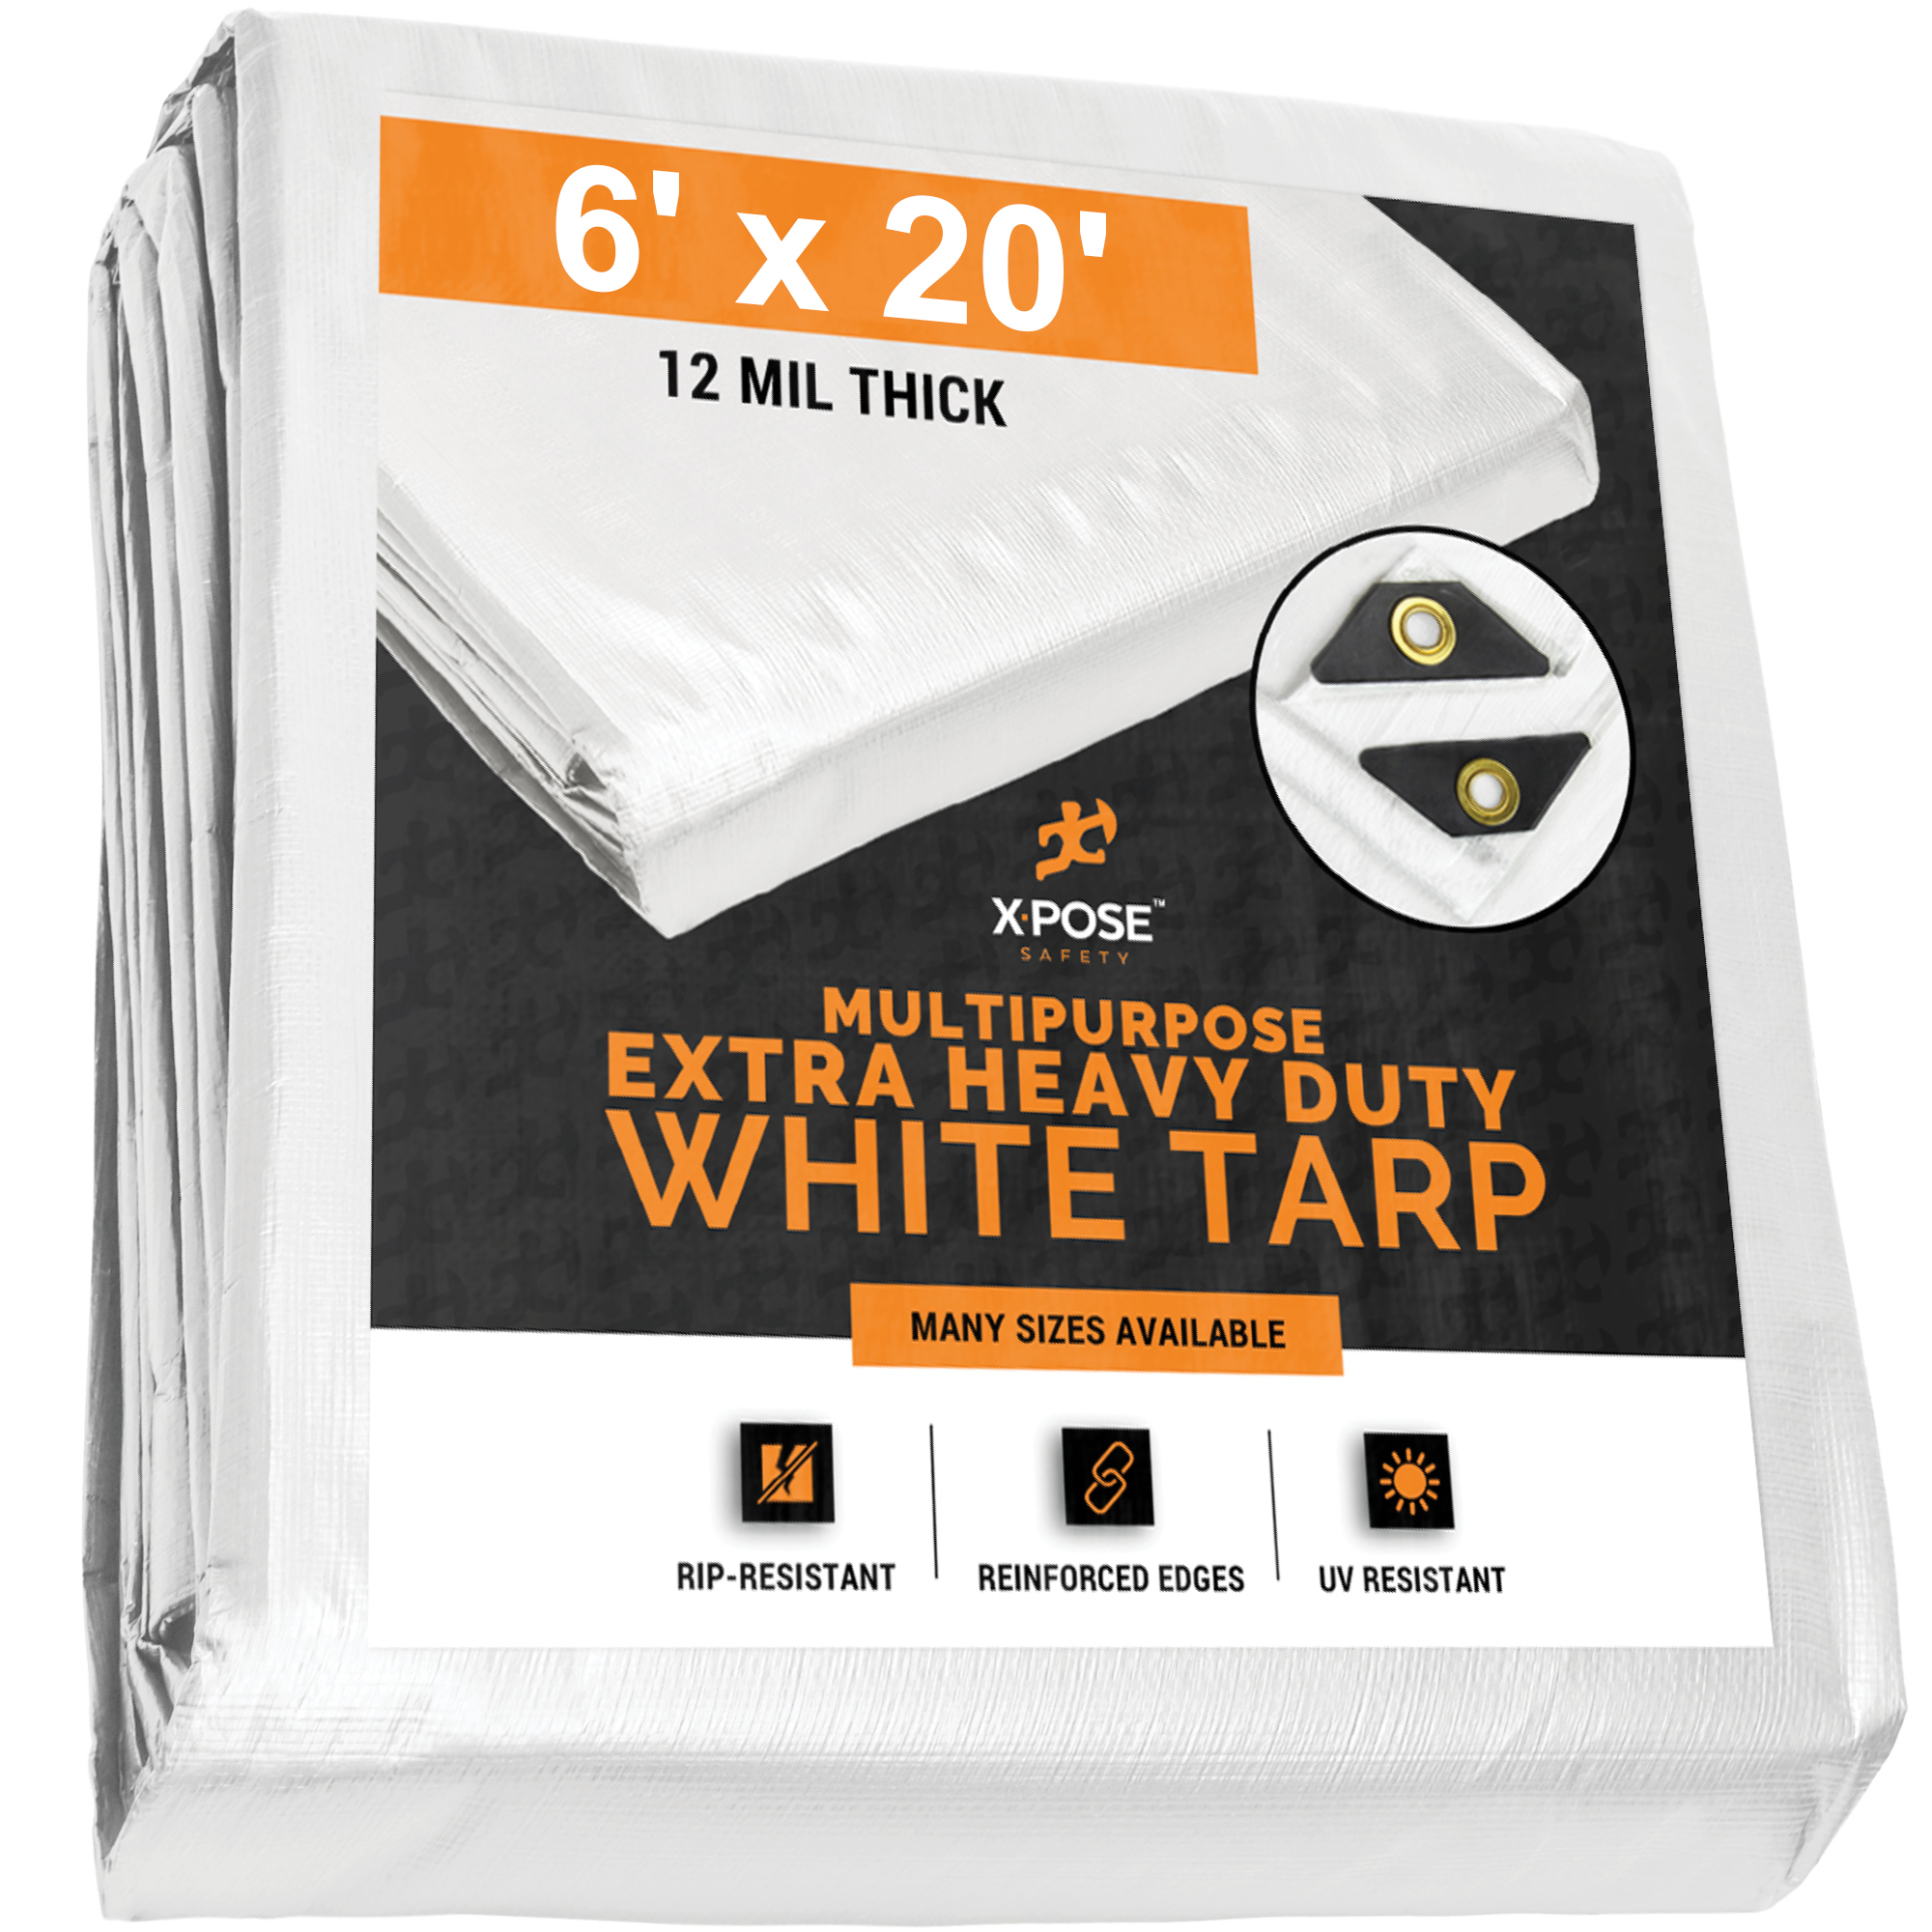 Heavy Duty White Poly Tarp 6' x 20' Multipurpose Protective Cover - Durable, Waterproof, Weather Proof, Rip and Tear Resistant - Extra Thick 12 Mil Polyethylene WHD-620-X